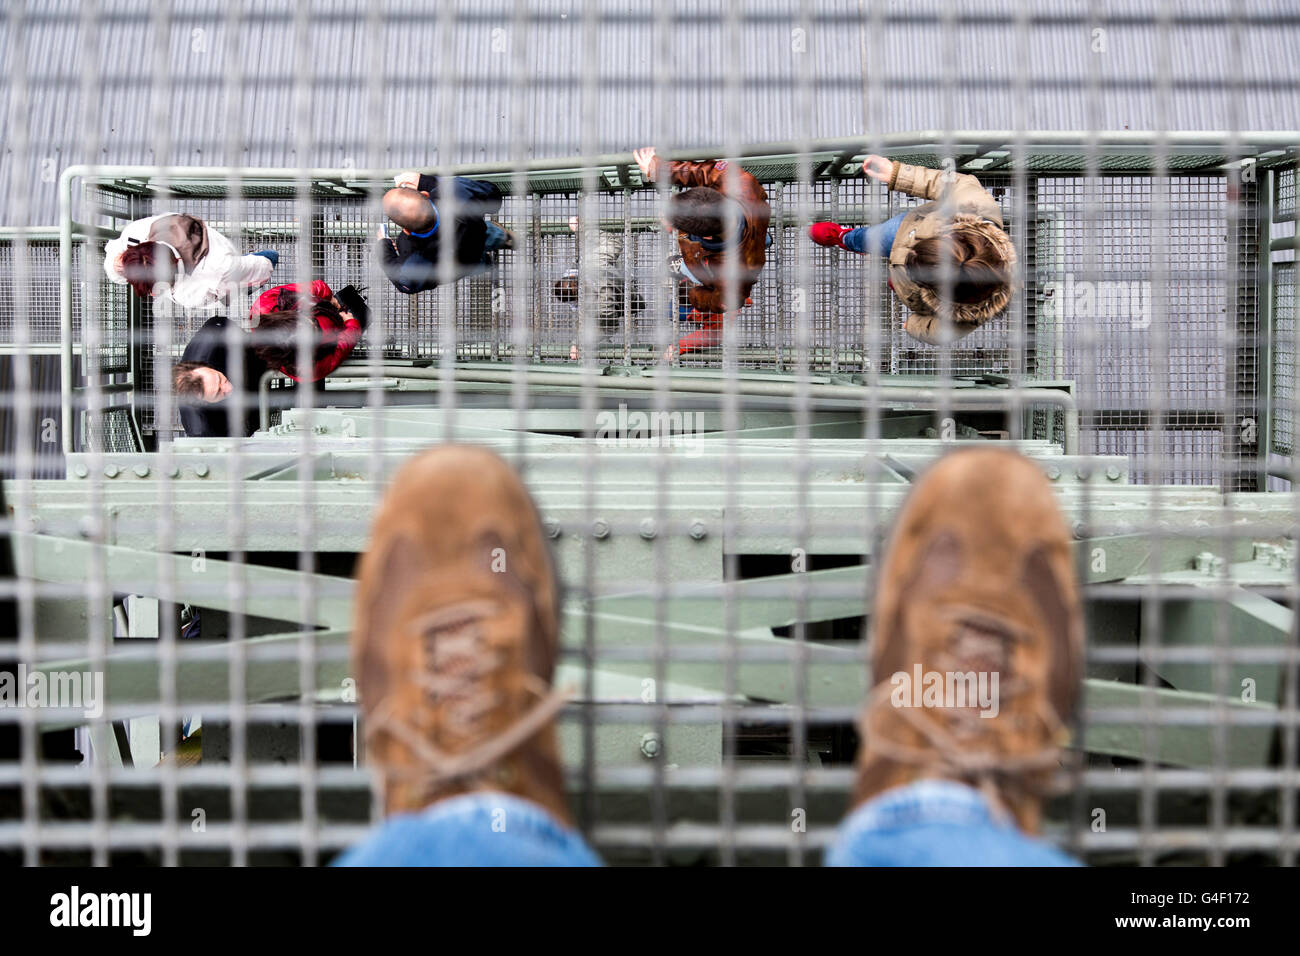 Symbol picture about acrophobia, person stands on the metal grid of a staircase, looking down into the depths, - Stock Image